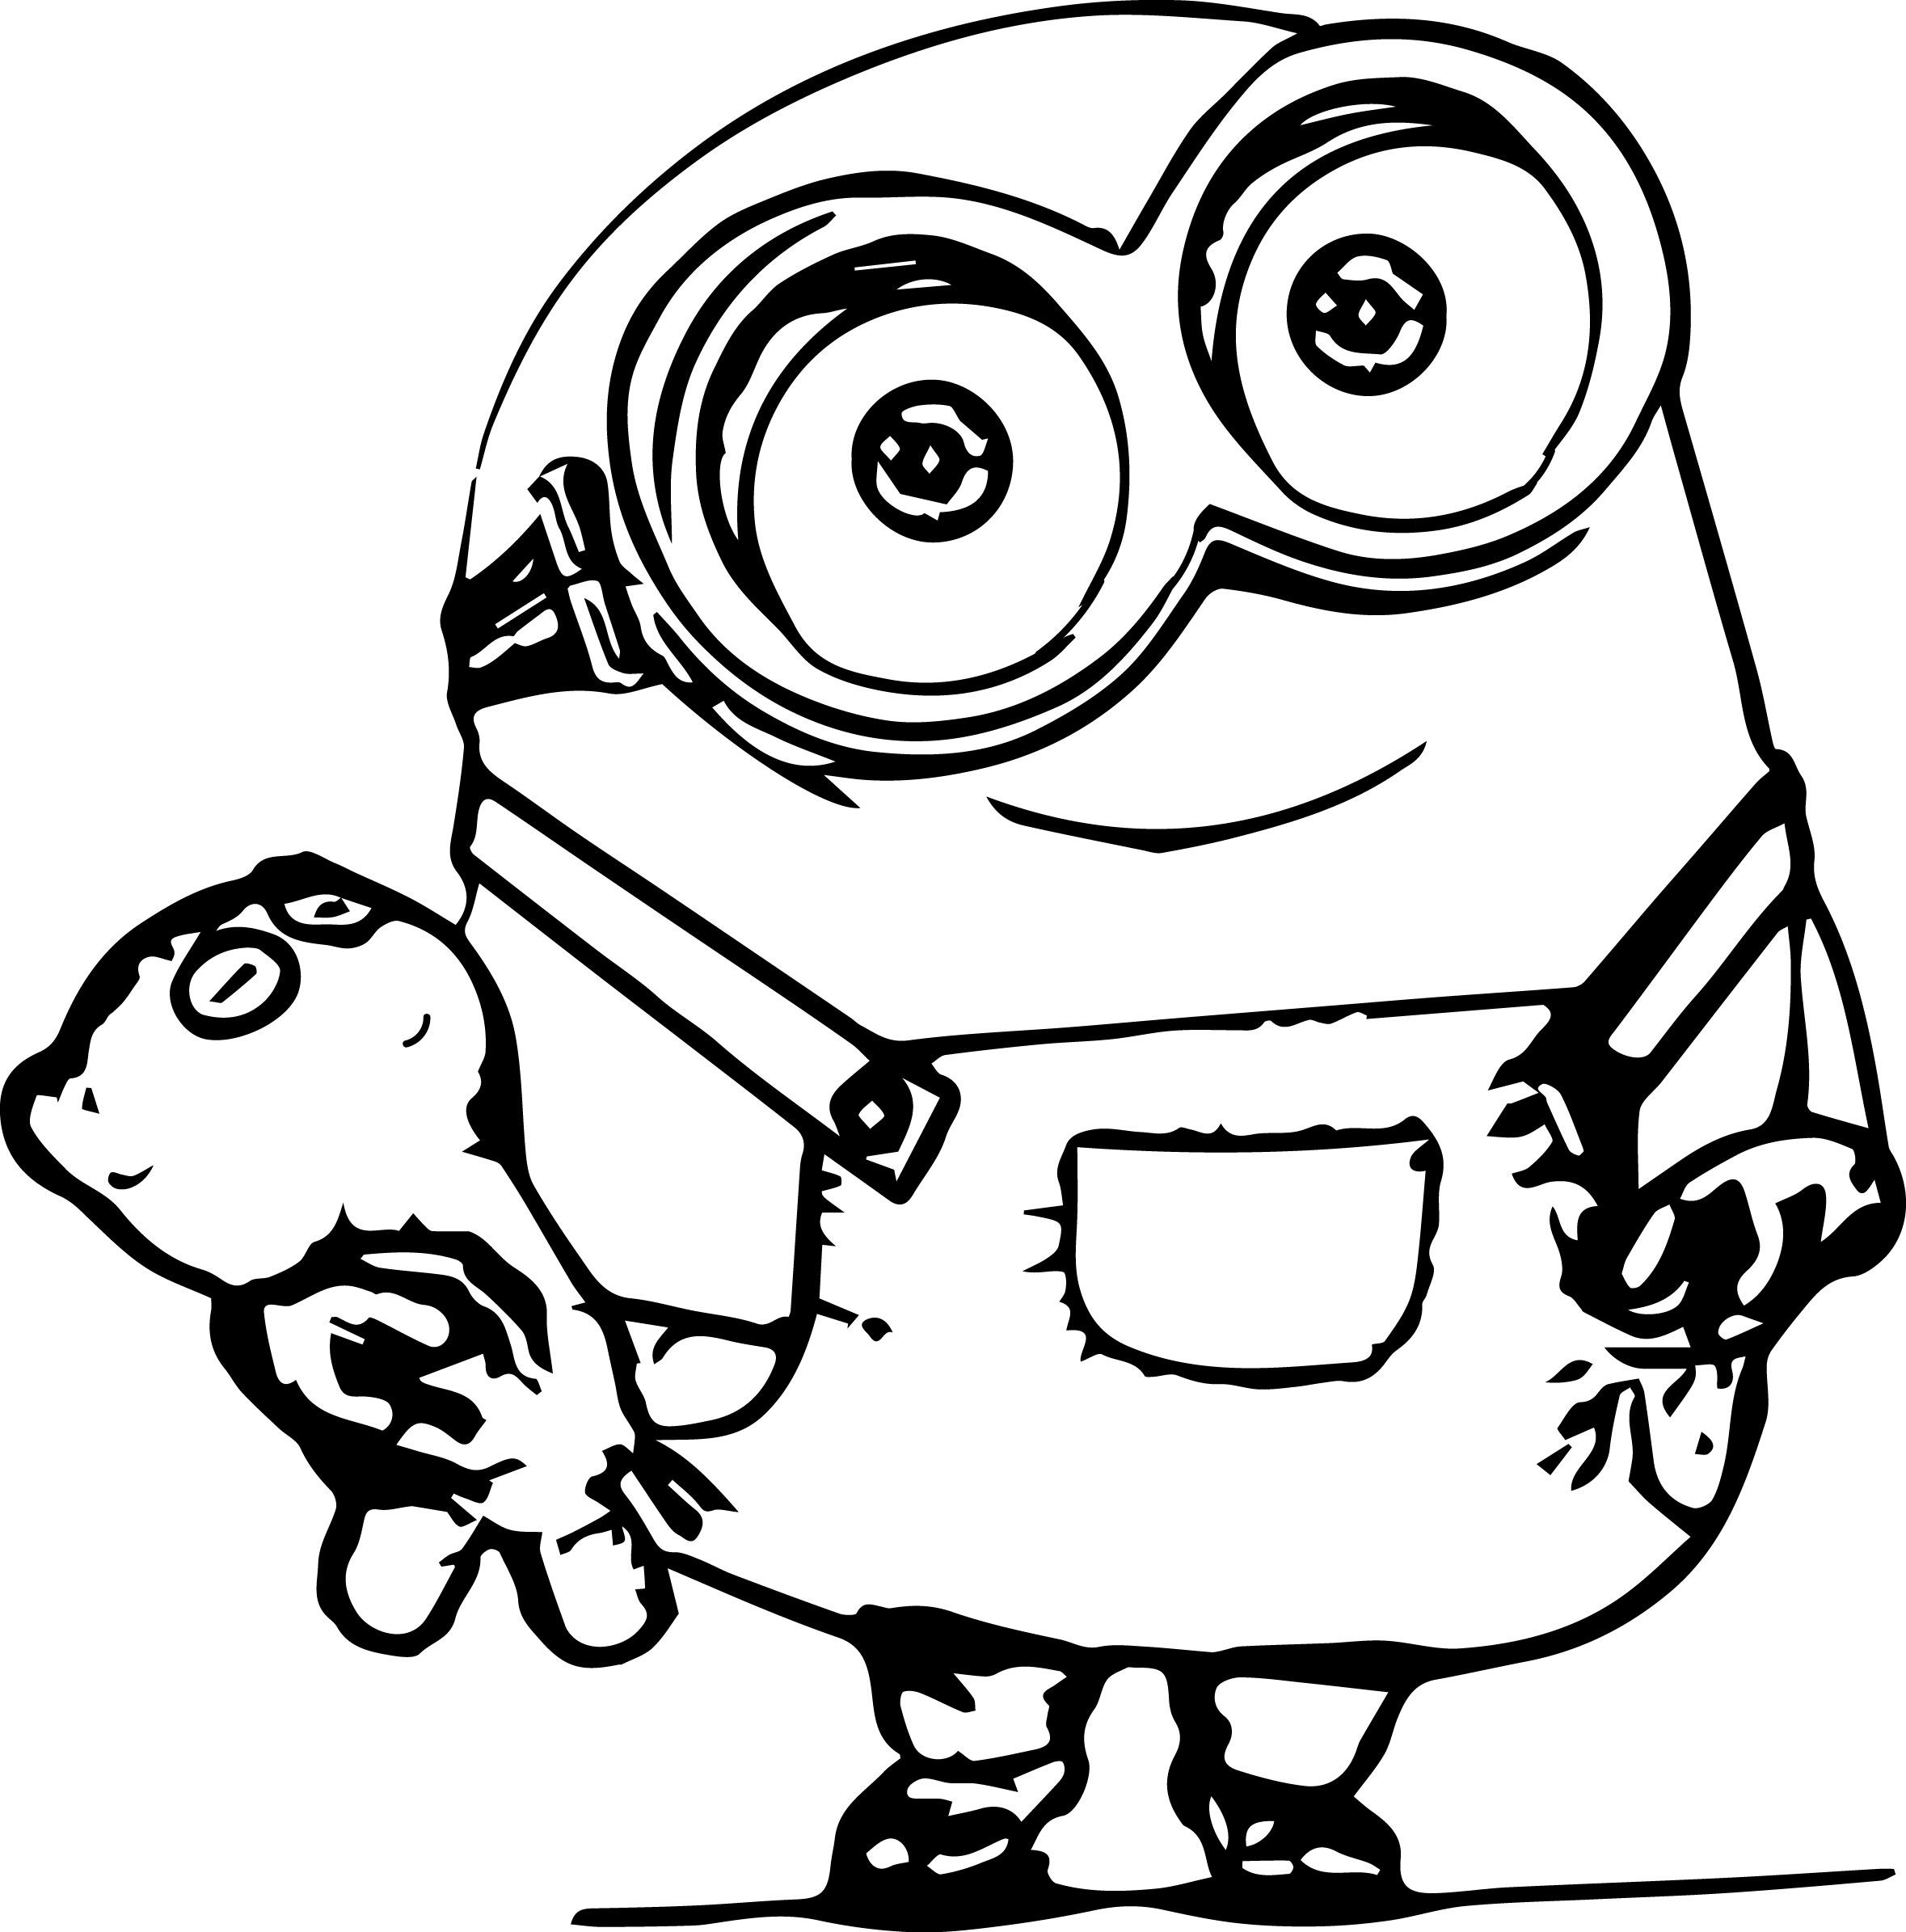 awesome Minions Coloring Pages | wecoloringpage | Pinterest ...